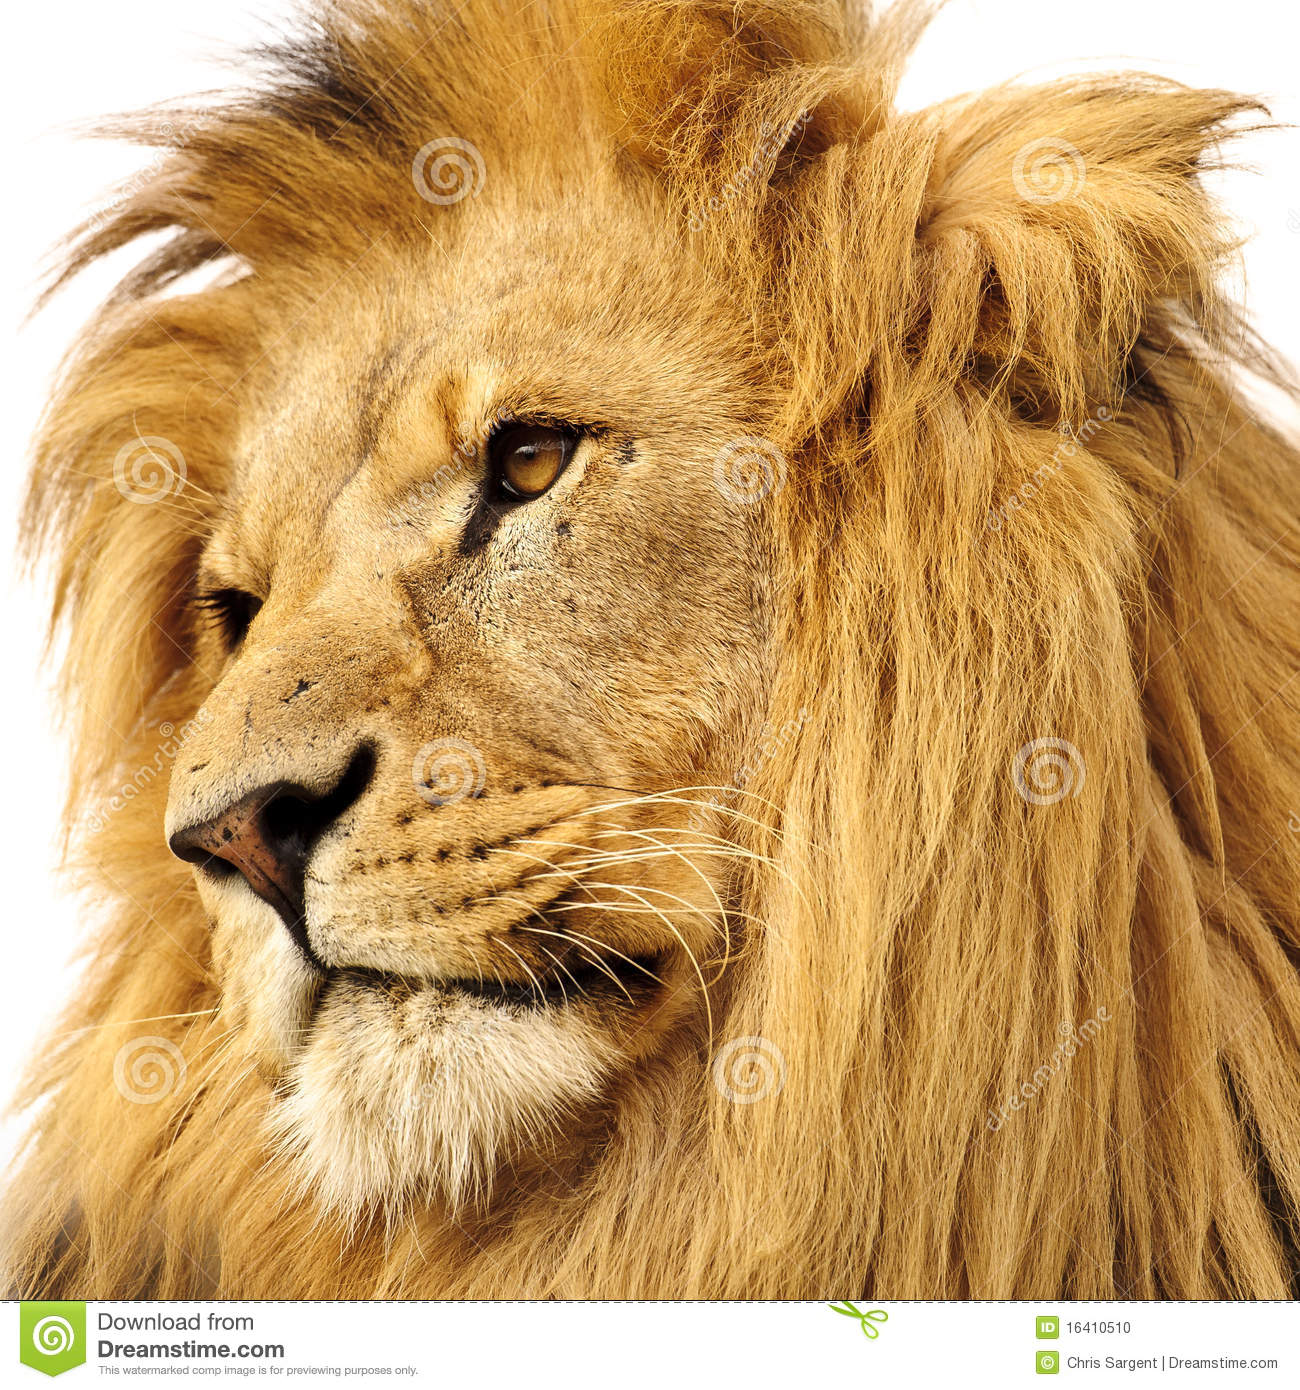 Portrait of lion isolated on white background.